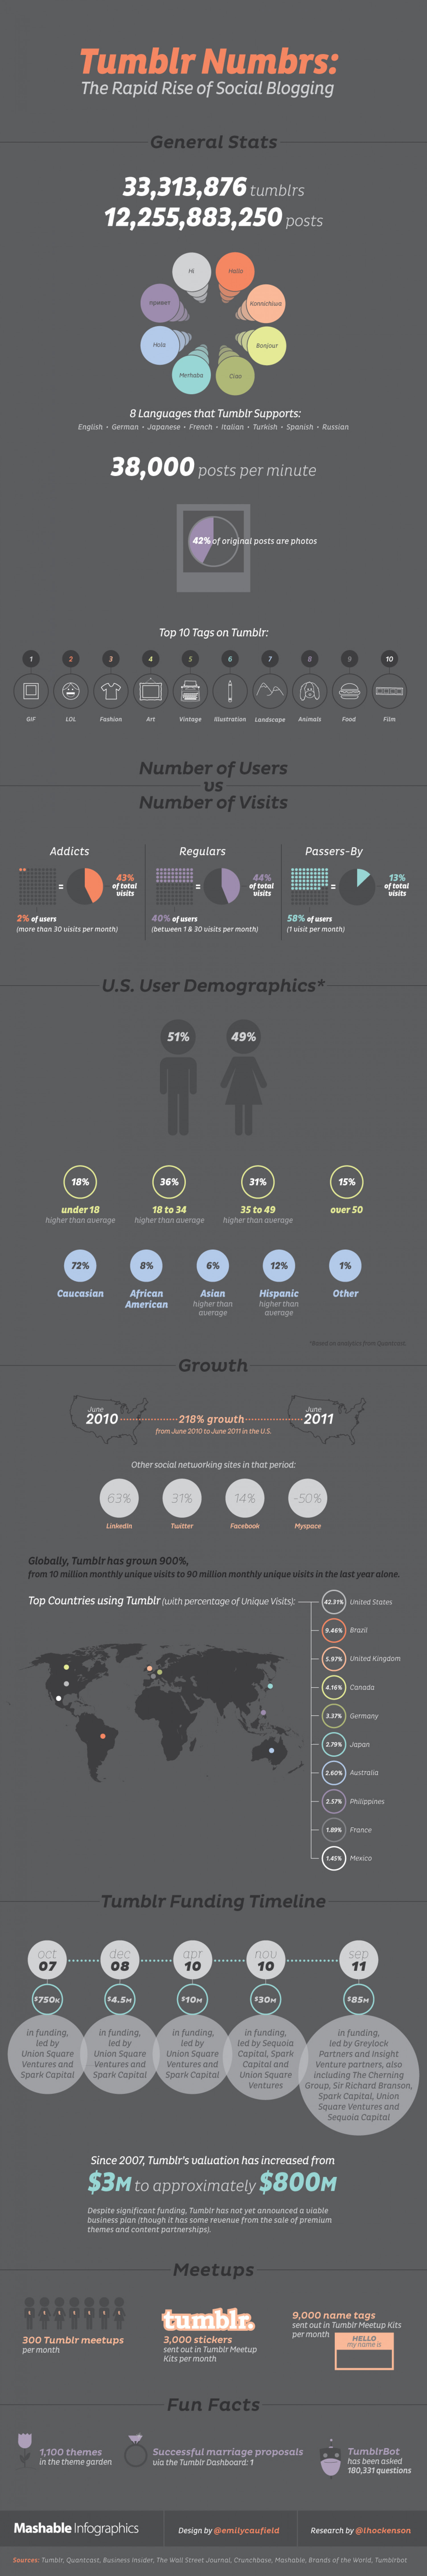 Tumblr by the Numbers Infographic